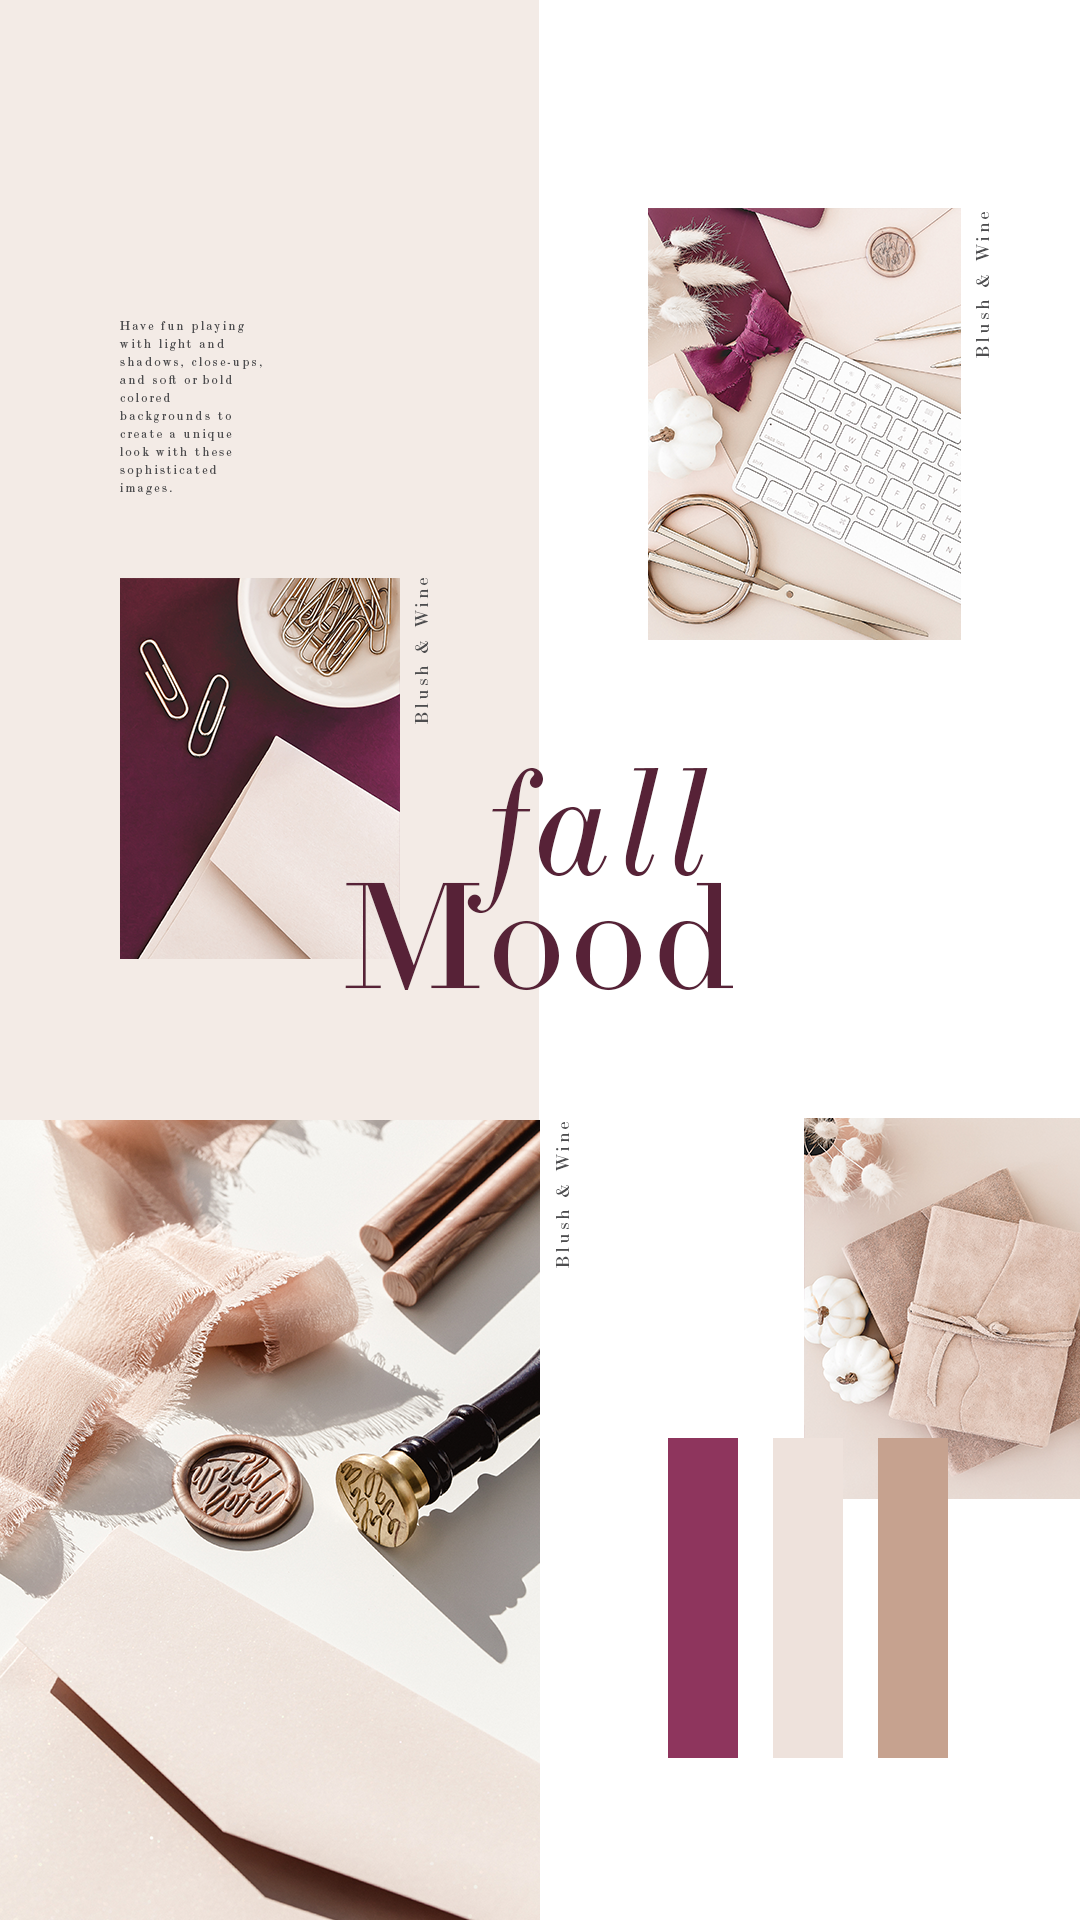 Blush and wine make the perfect pairing for a soft, feminine, fall color palette. This collection features stationery images for creative entrepreneurs, women business owners and bloggers.